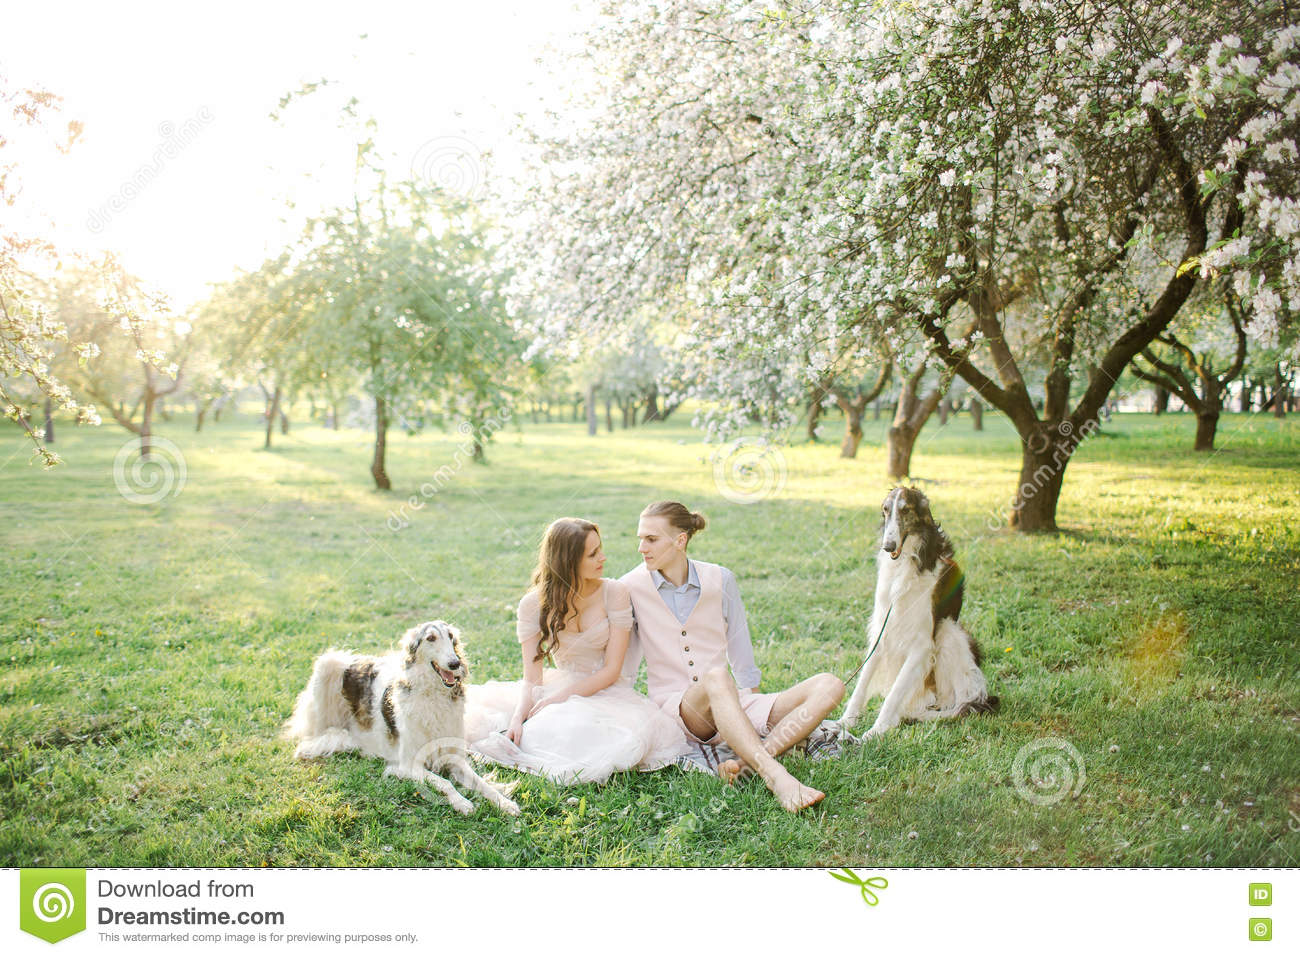 Beautiful young couple in wedding dress with greyhounds in park